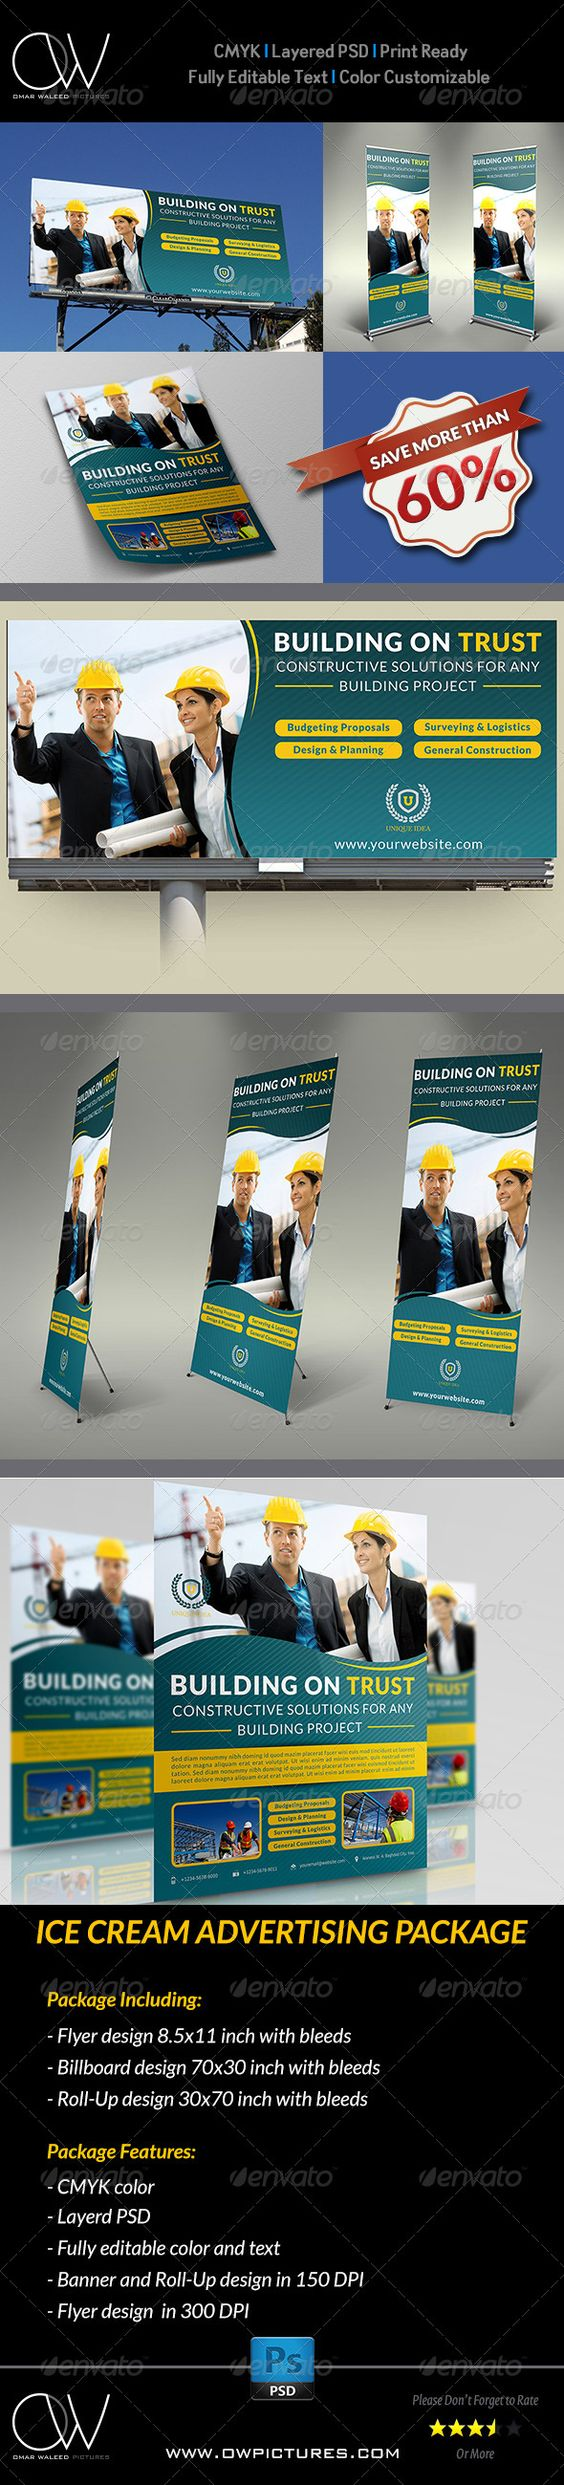 the world s catalog of ideas advertising package description cleaning services advertising bundle including flyer design billboard design and roll up signage banner design